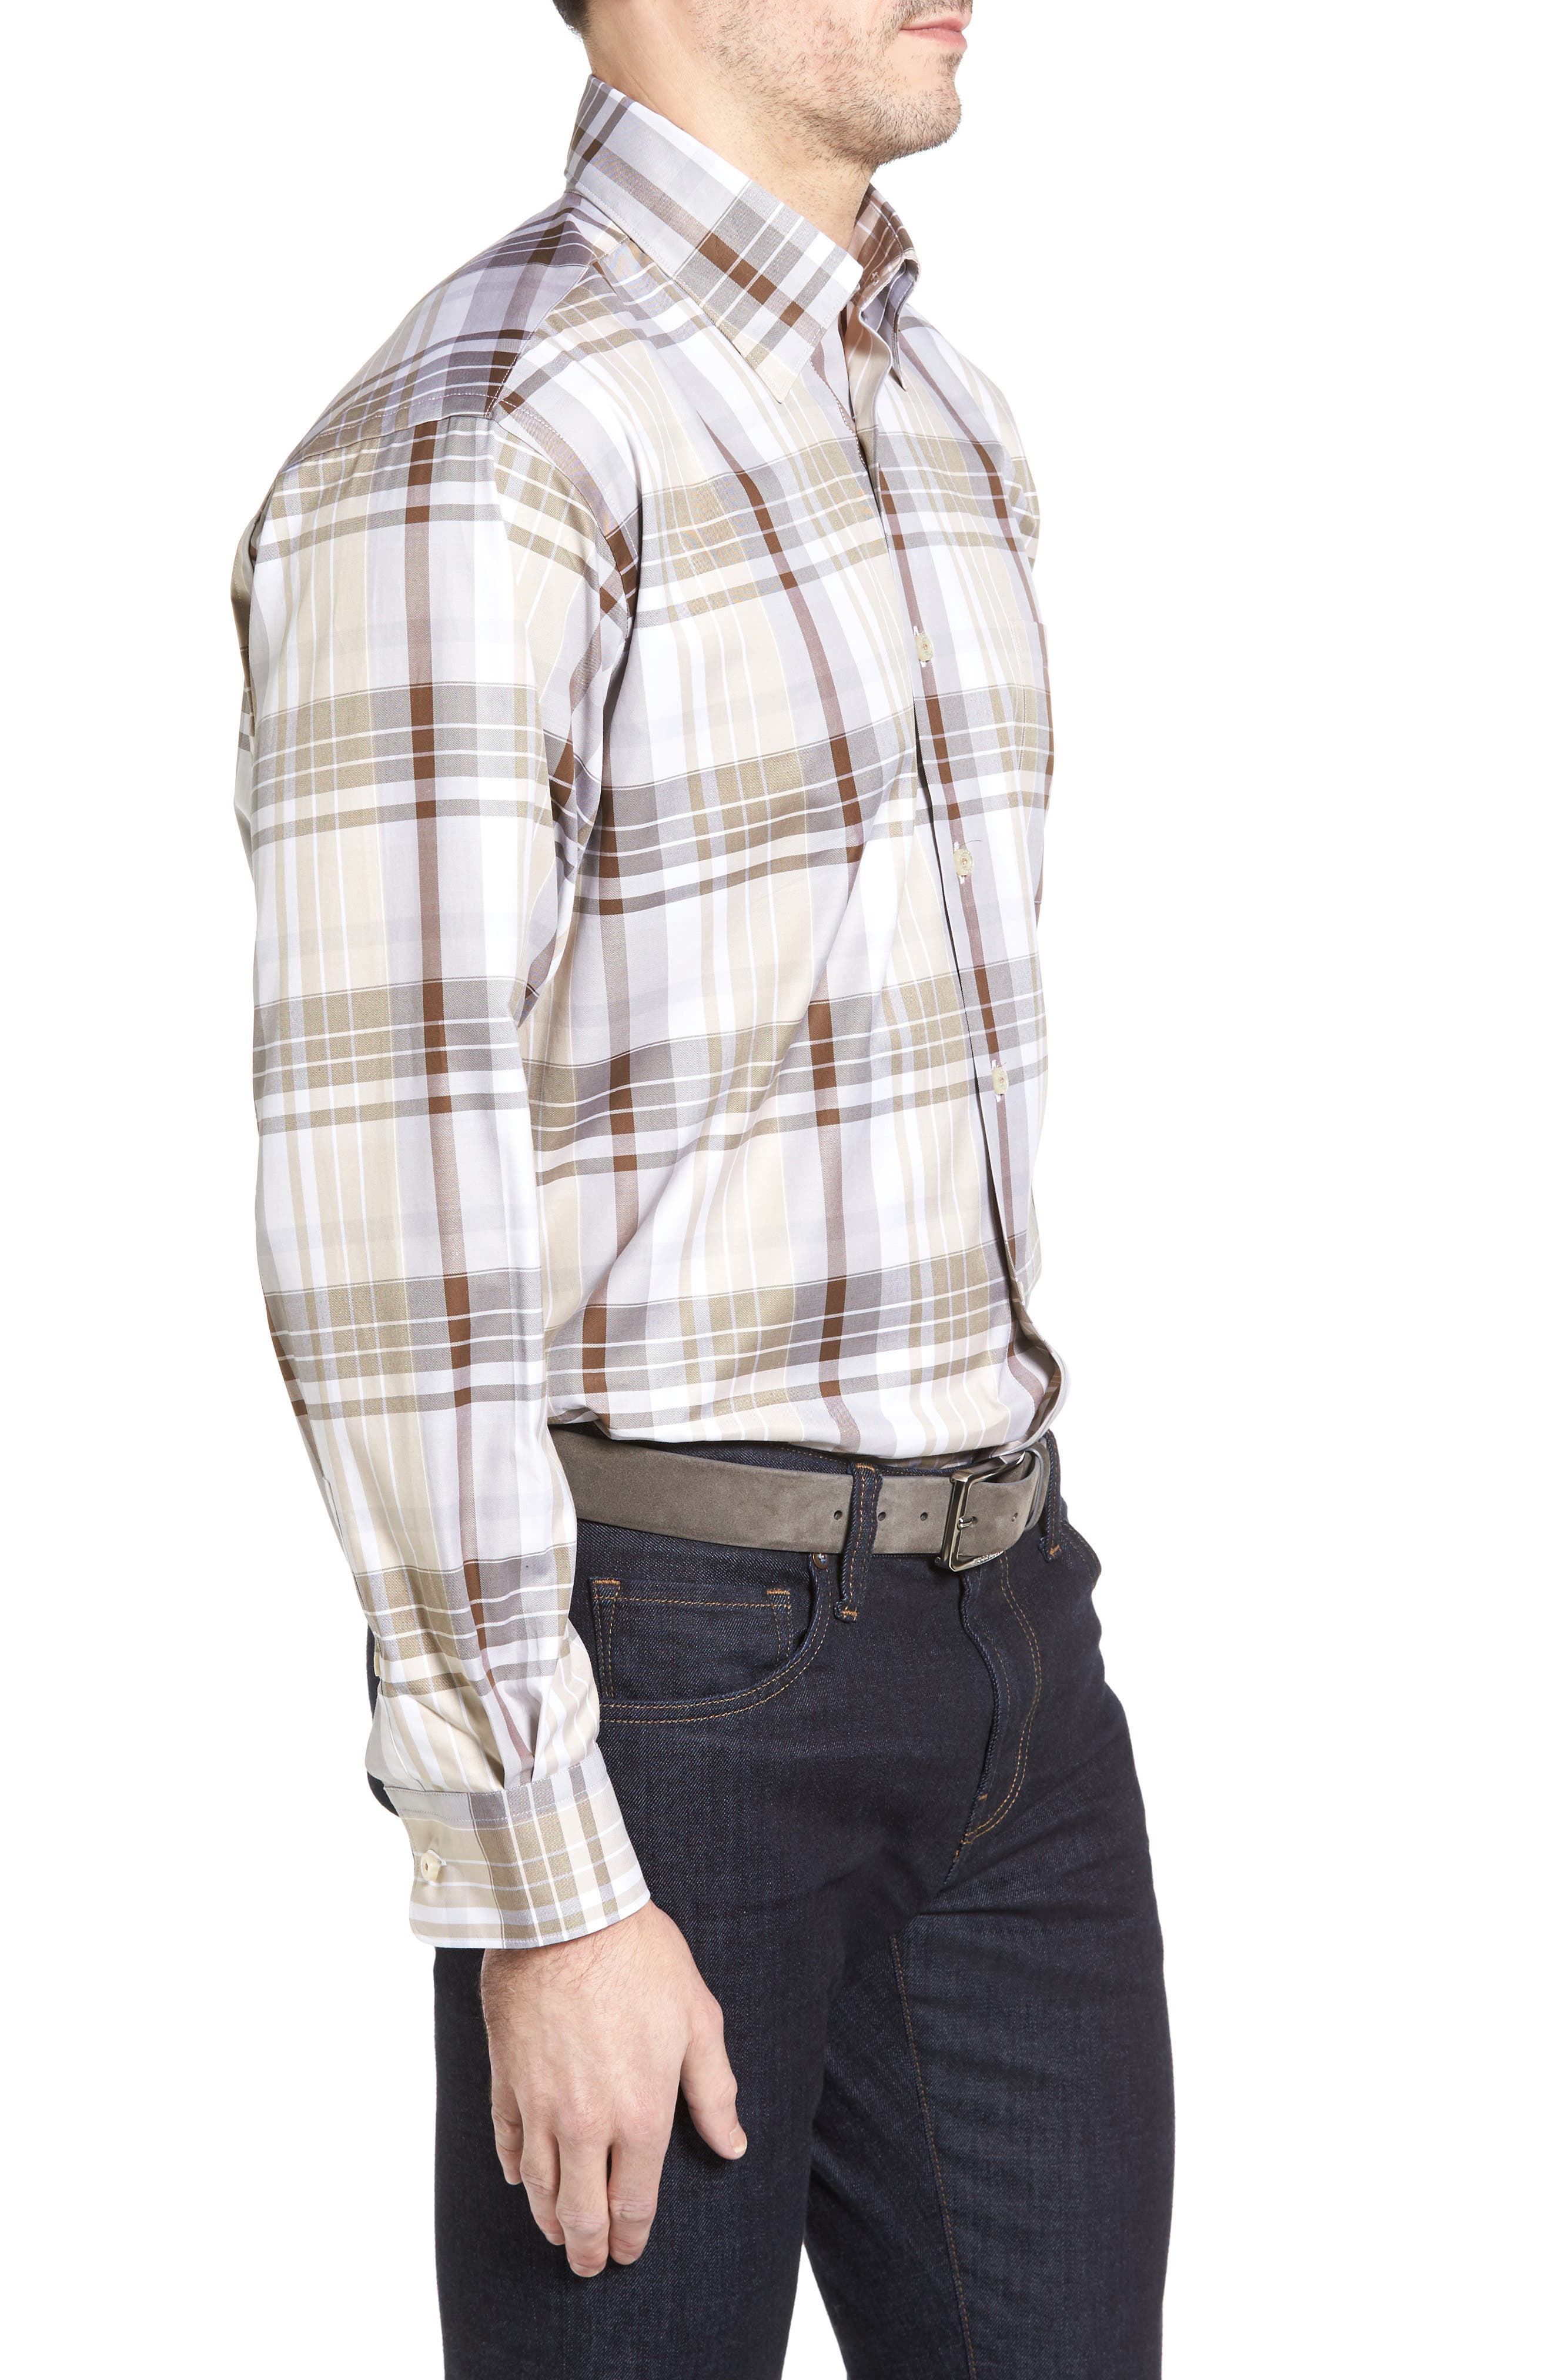 Anderson Classic Fit Plaid Micro Twill Sport Shirt,                             Alternate thumbnail 3, color,